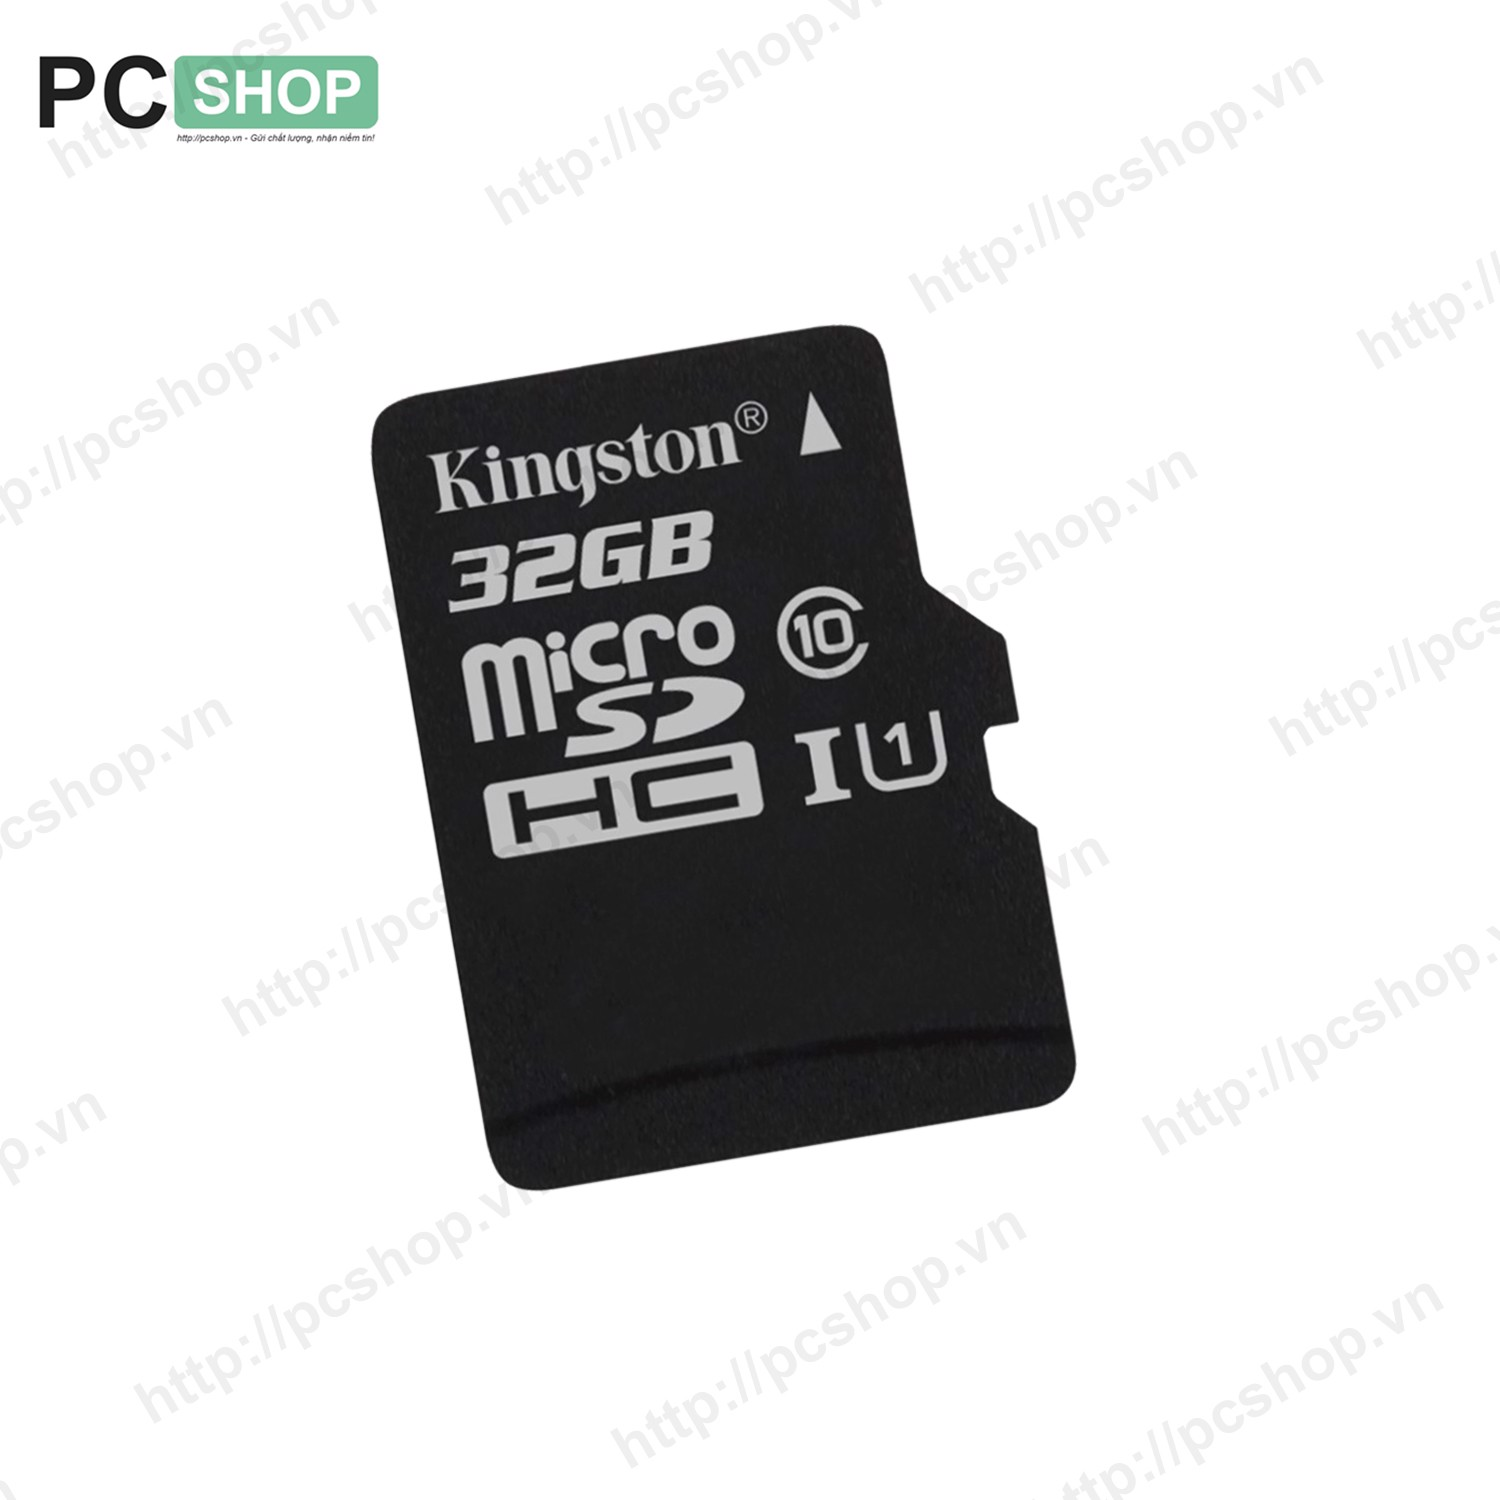 Thẻ nhớ MicroSD Kingston SDC10G2 32GB - Ko adapter